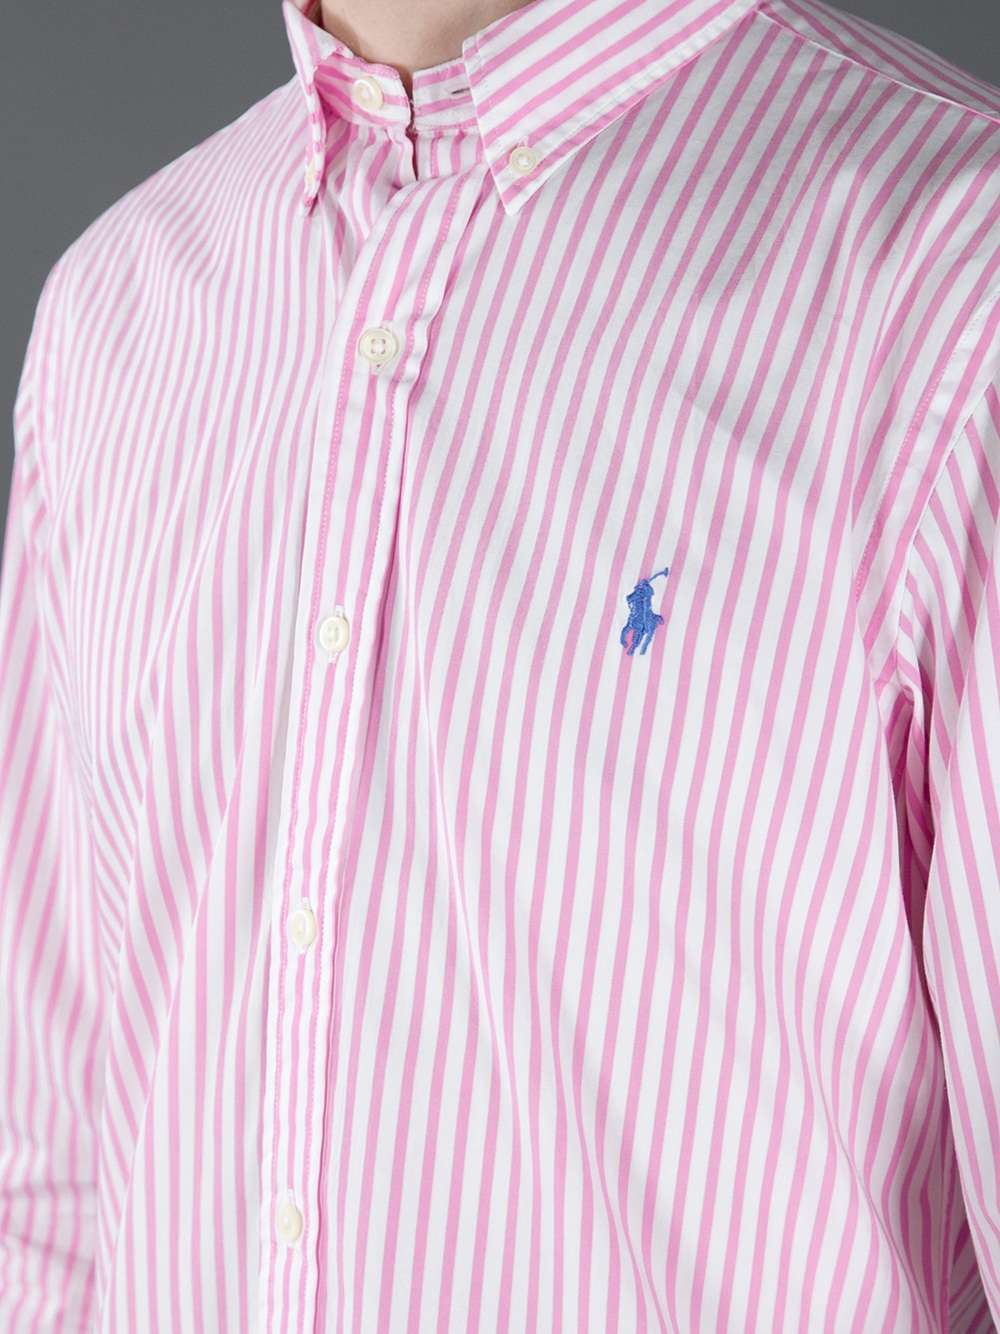 Polo ralph lauren striped shirt in pink for men lyst for Pink white striped shirt